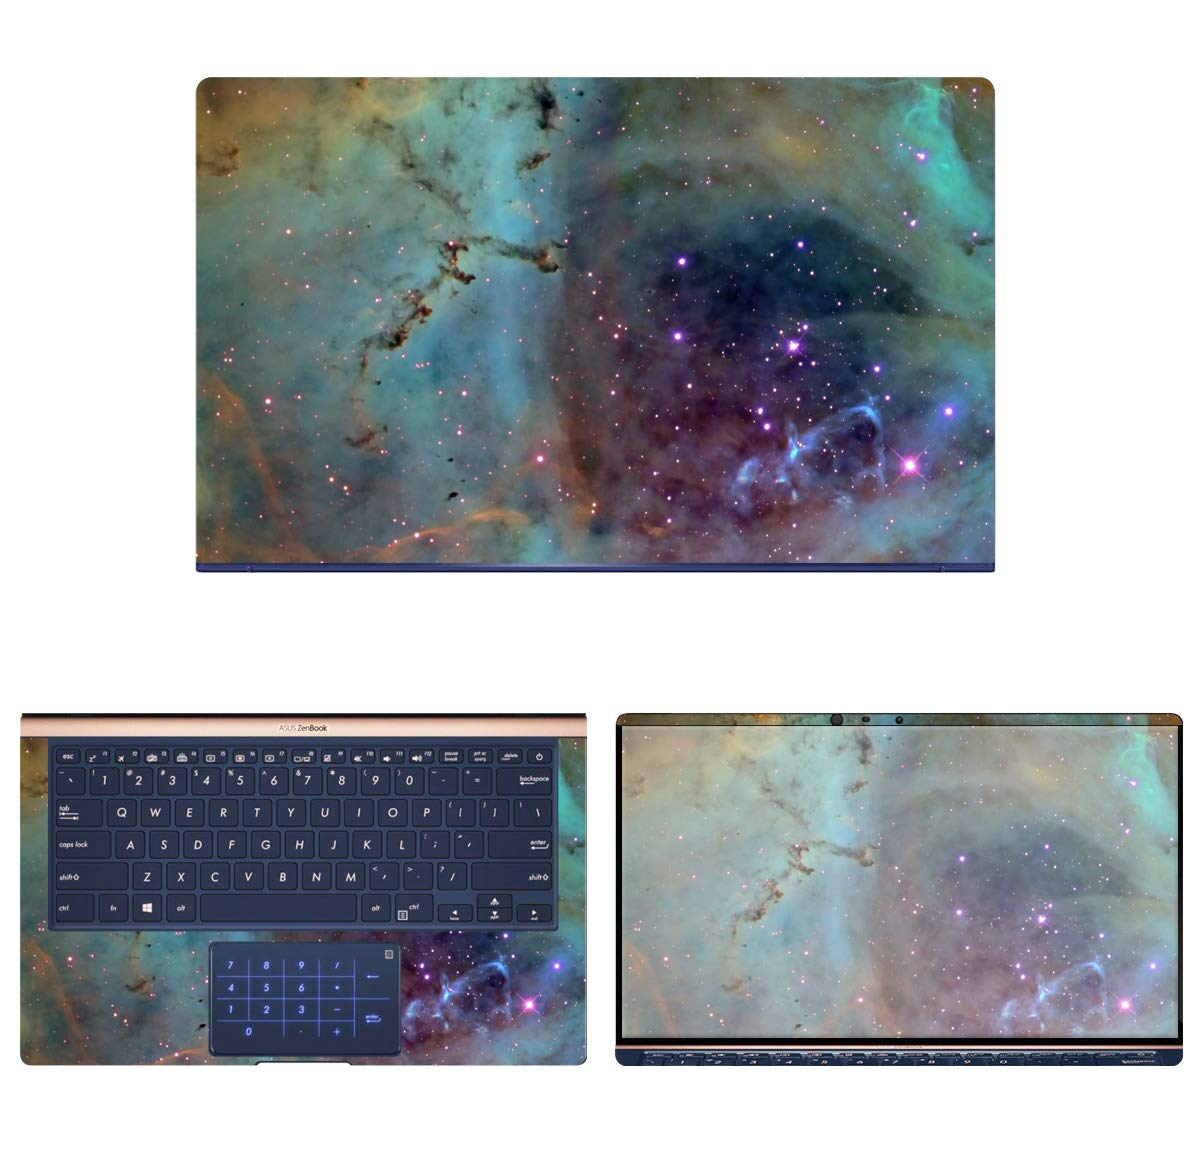 decalrus - Protective Decal Galaxy Skin Sticker for Asus ZenBook 13 UX333FA (13.3'' Screen) case Cover wrap ASzenbk13_ux333-74